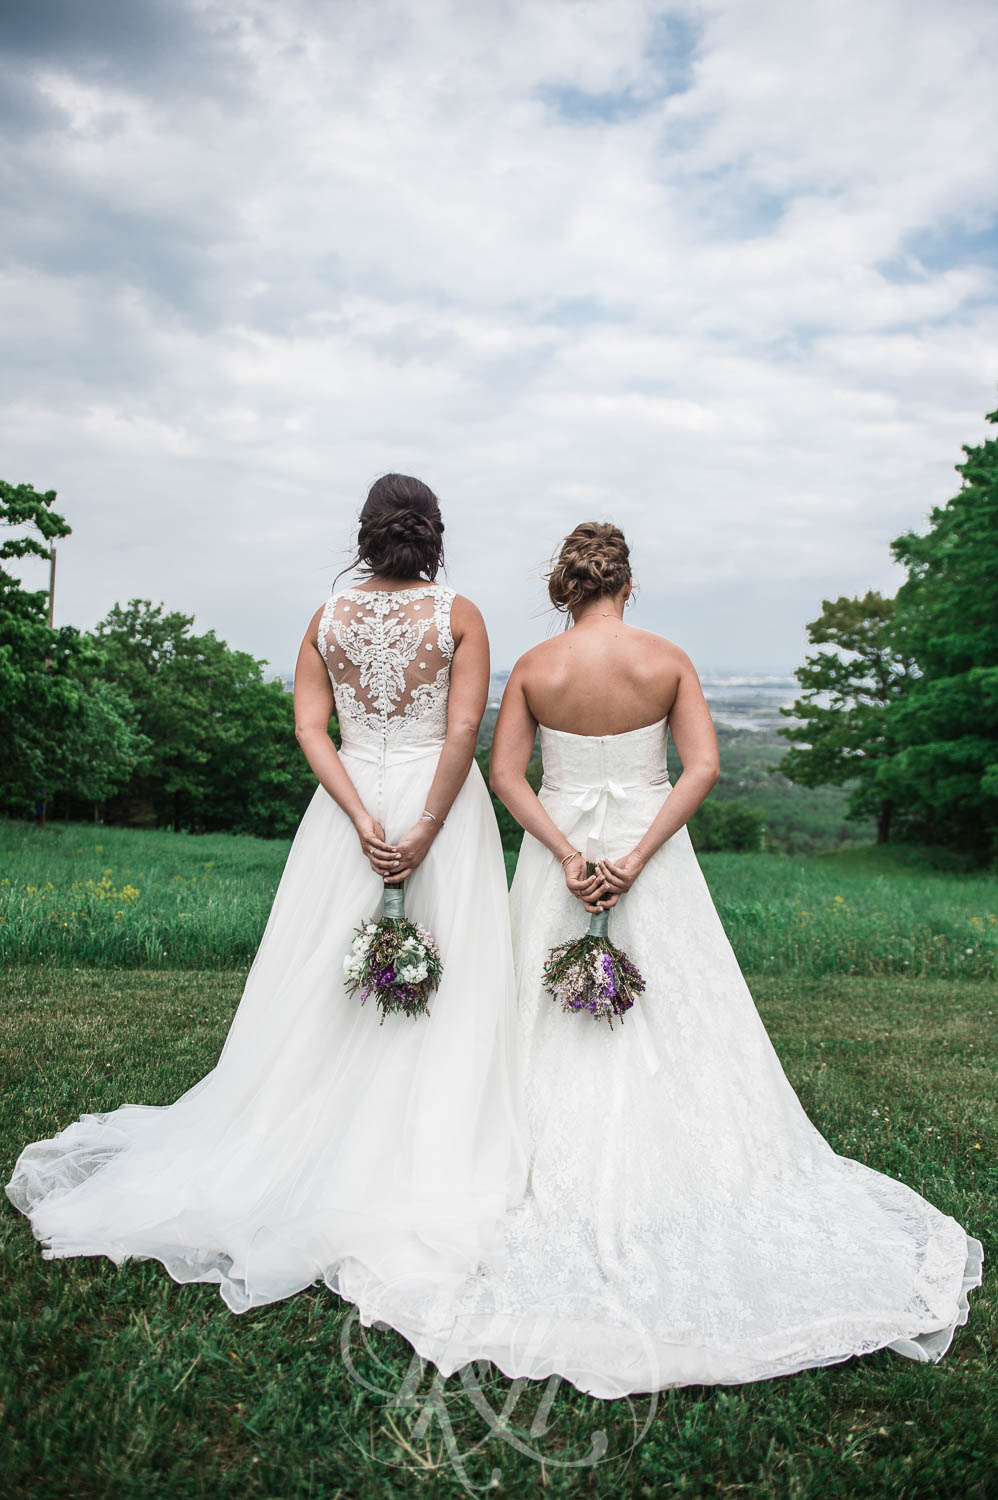 Britni & Paige - LGBT Minnesota Wedding Photography - Spirit Mountain - RKH Images  (25 of 32).jpg